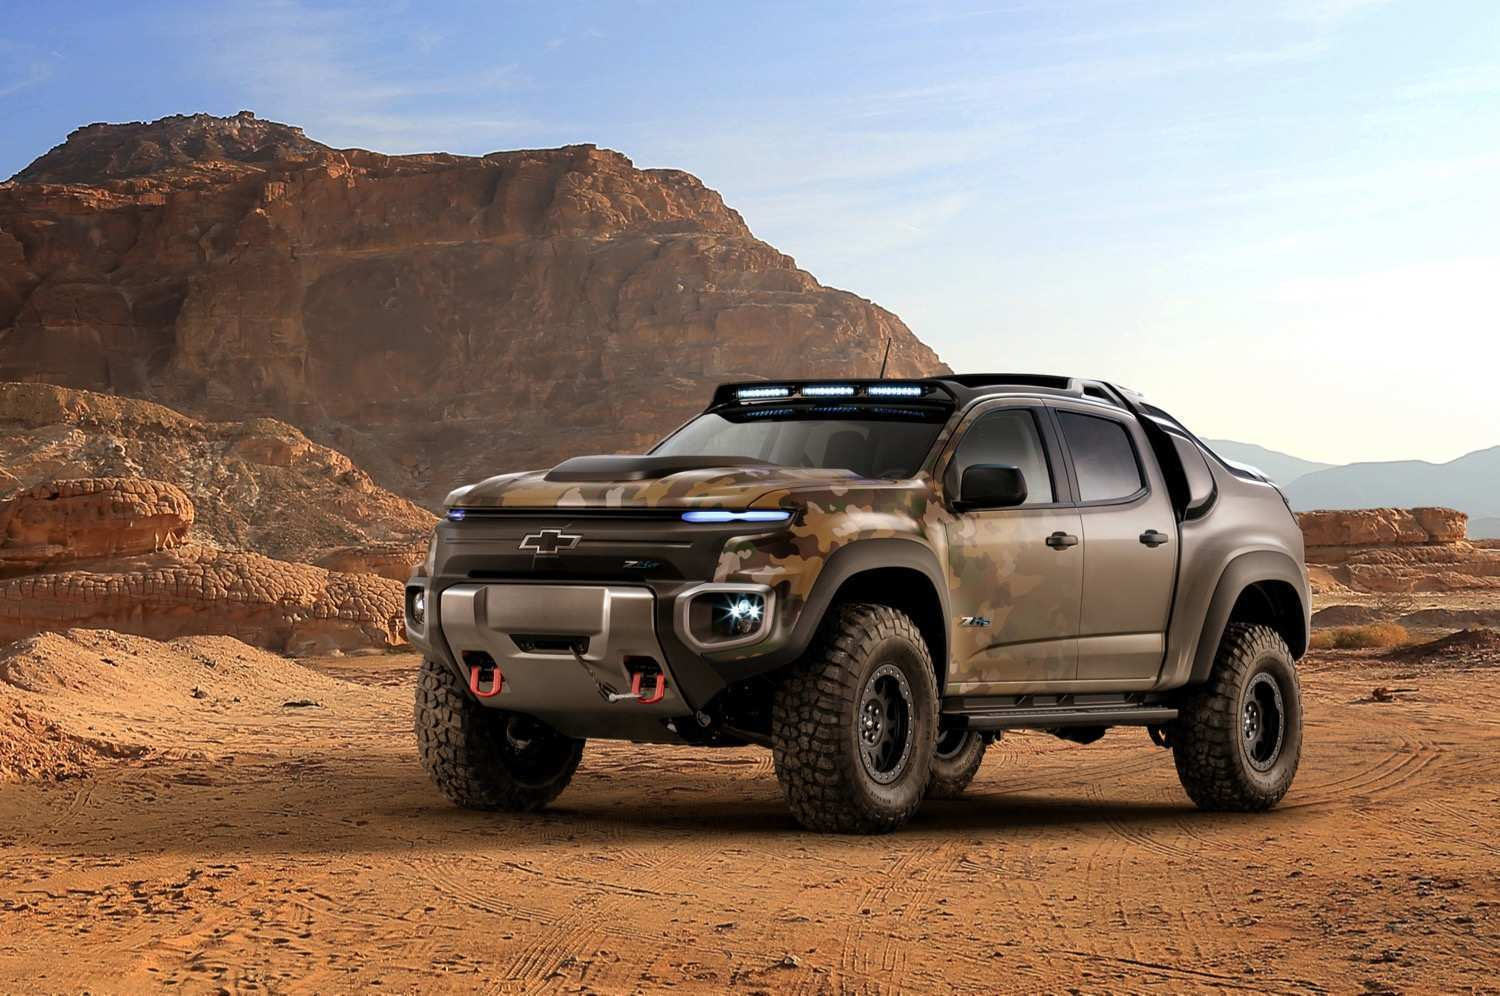 29 All New 2020 Chevy Colorado Going Launched Soon Specs